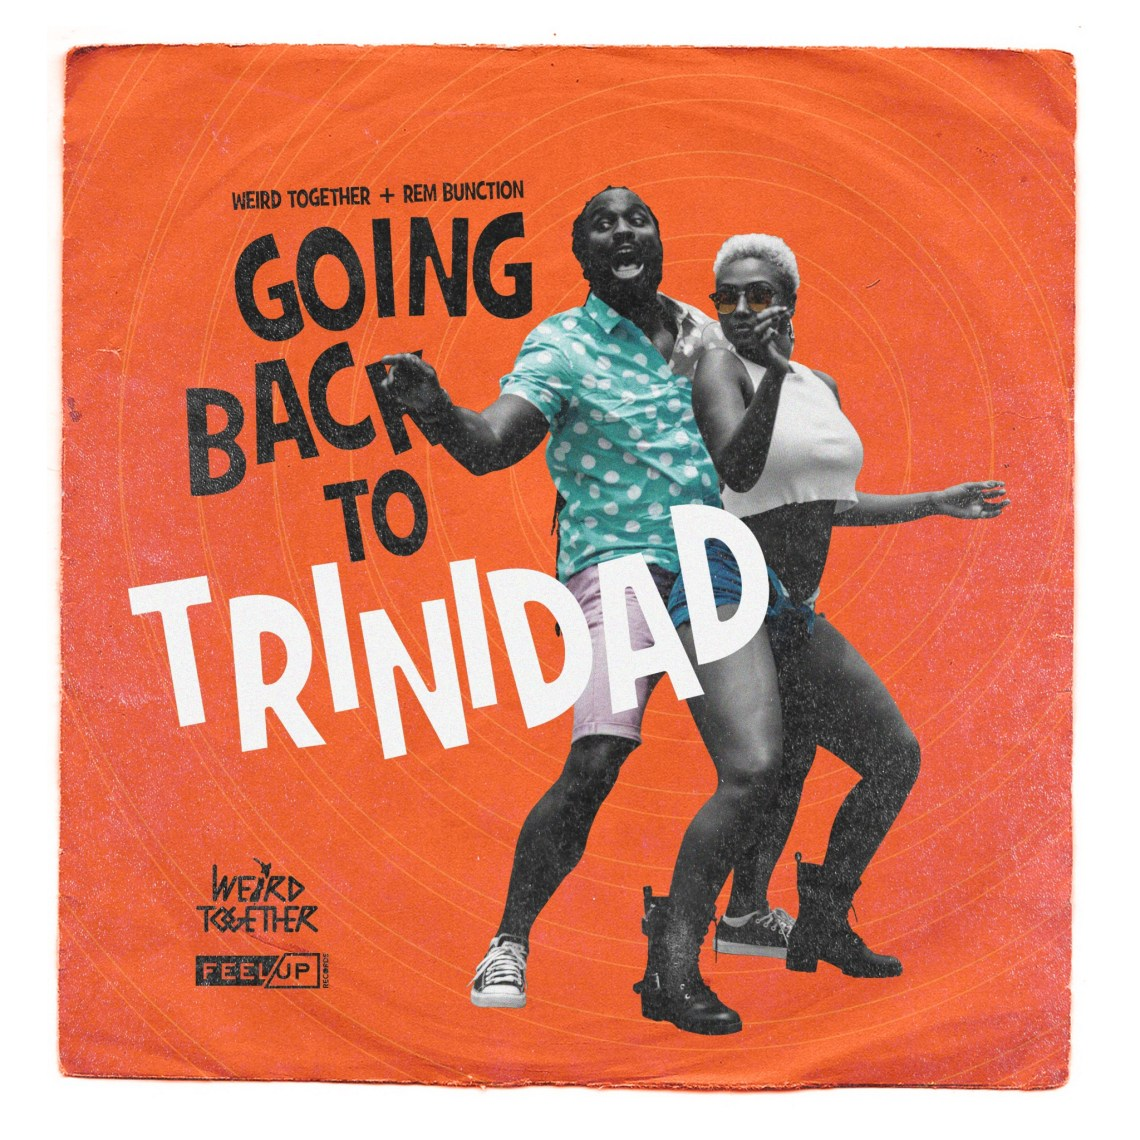 weird-together-going-back-to-trinidad